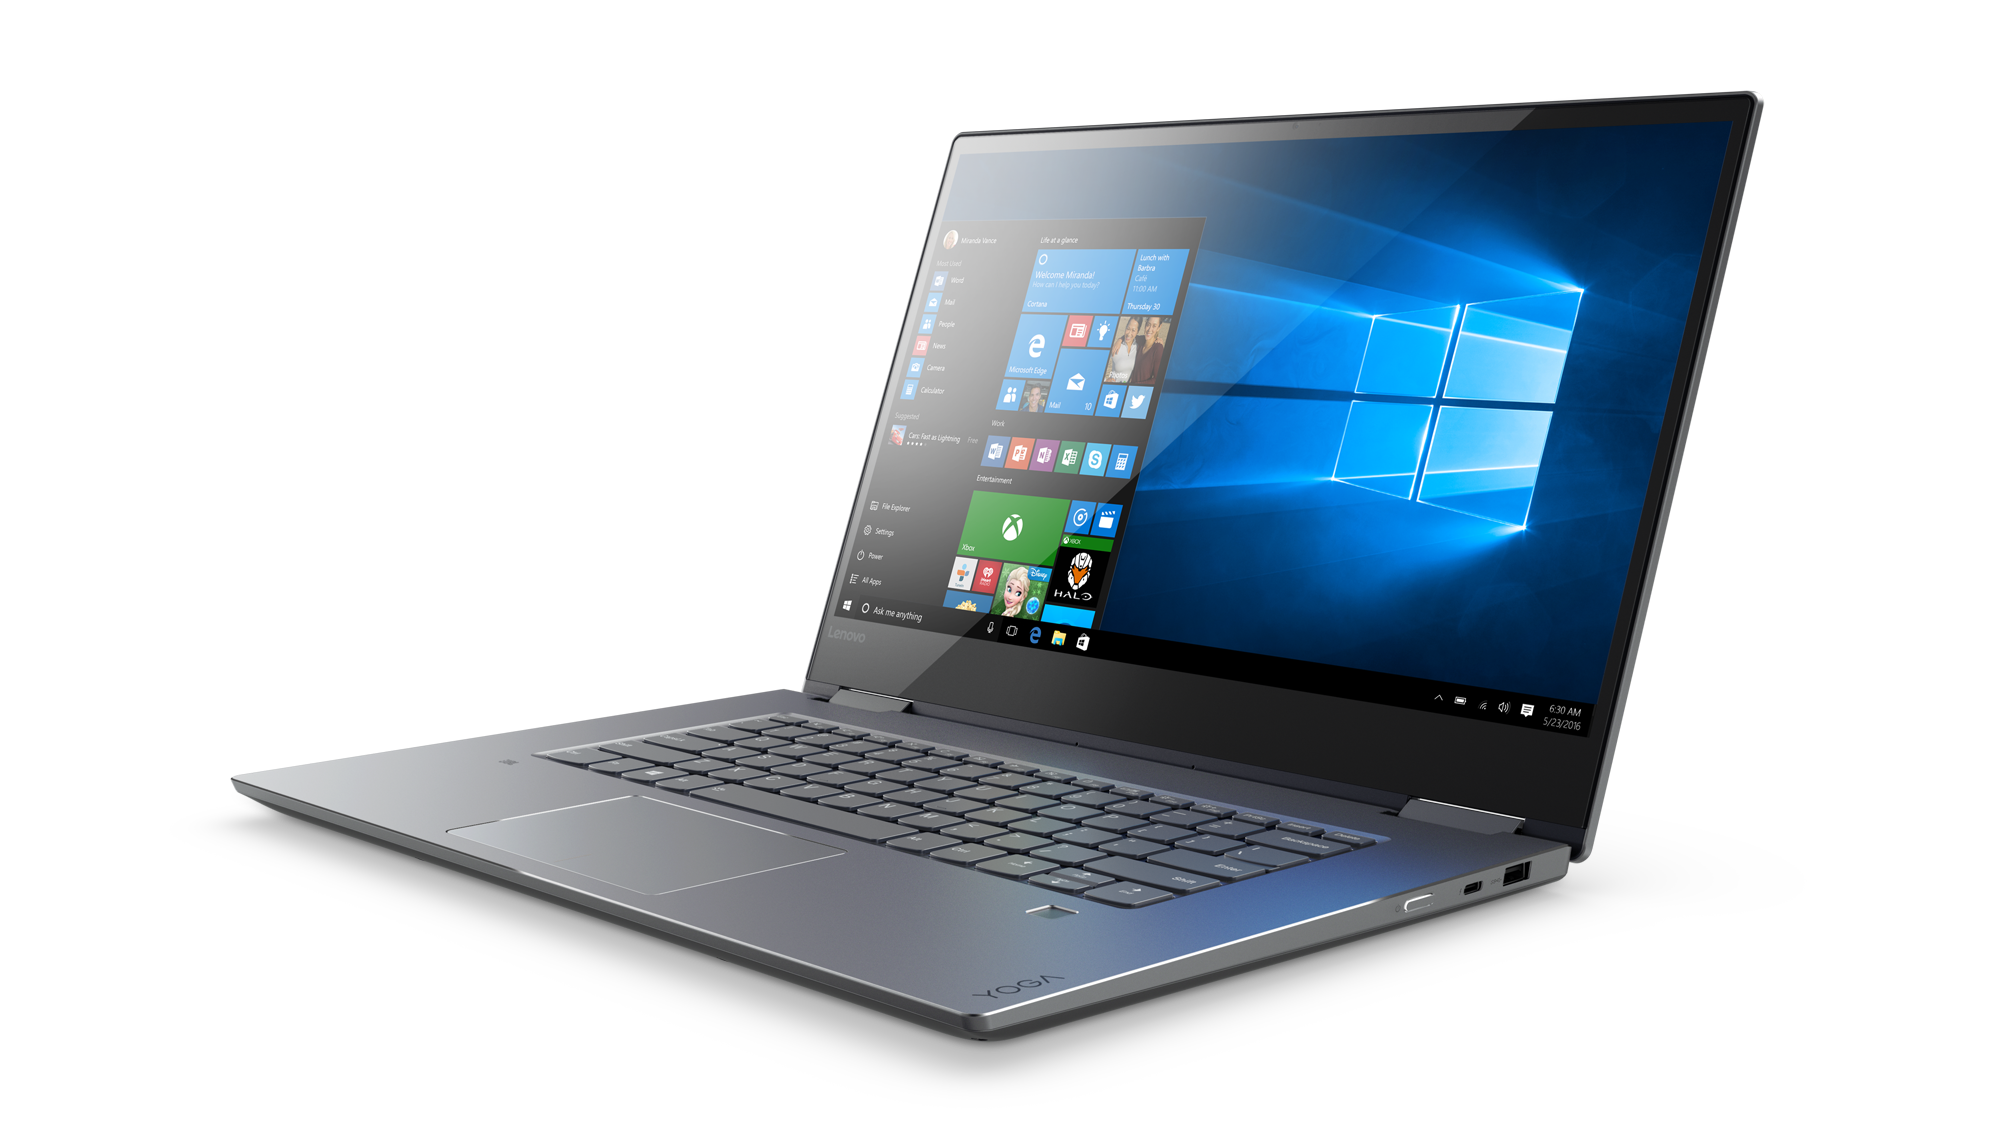 "Lenovo YOGA 720-15IKB i5-7300HQ 3,50GHz/8GB/SSD 256GB/15,6"" FHD/AG/multitouch/GeForce 2GB/WIN10 šedá 80X70047CK"